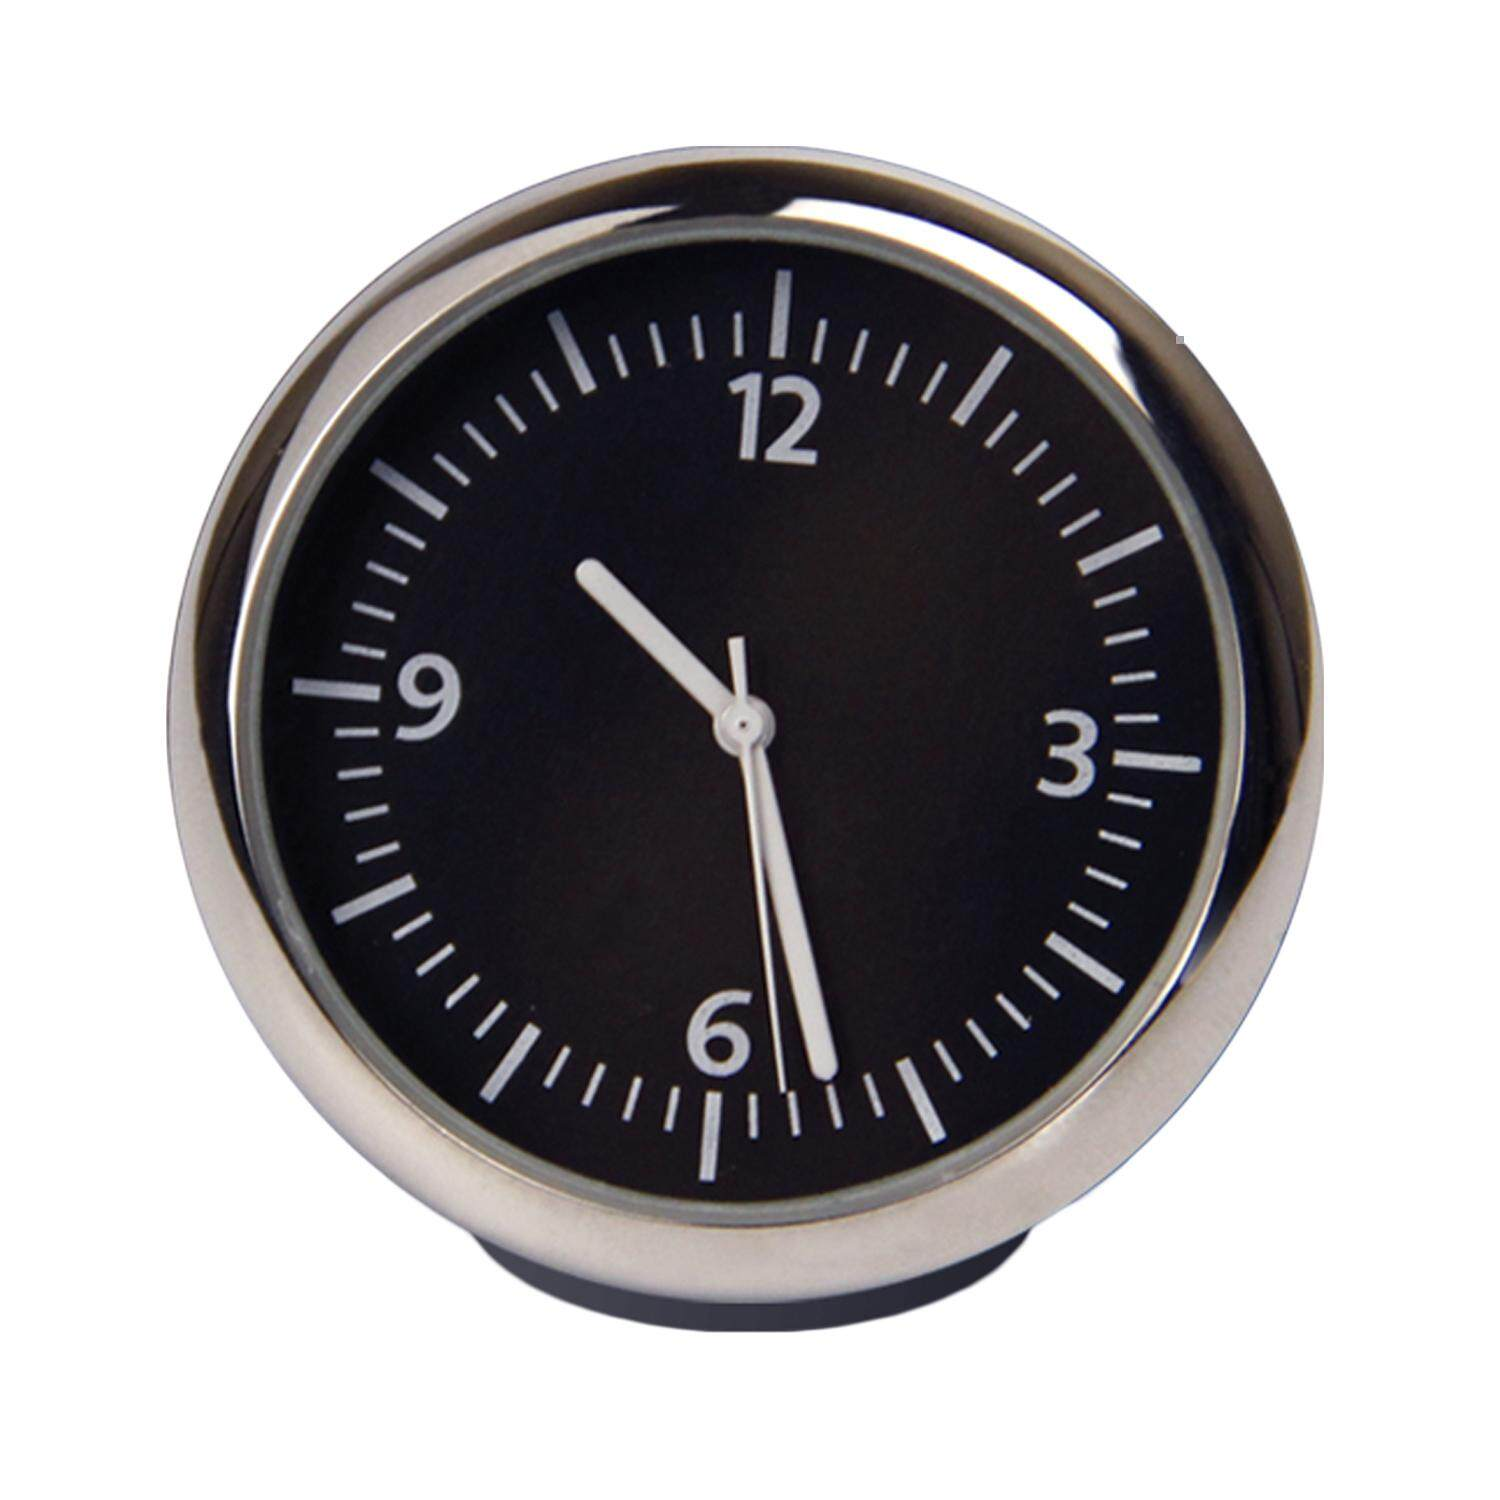 Small Car Dashboard Clock Table Classic Round Analog Clock Car Home Decoration Black 1.57 Inch By Duha.